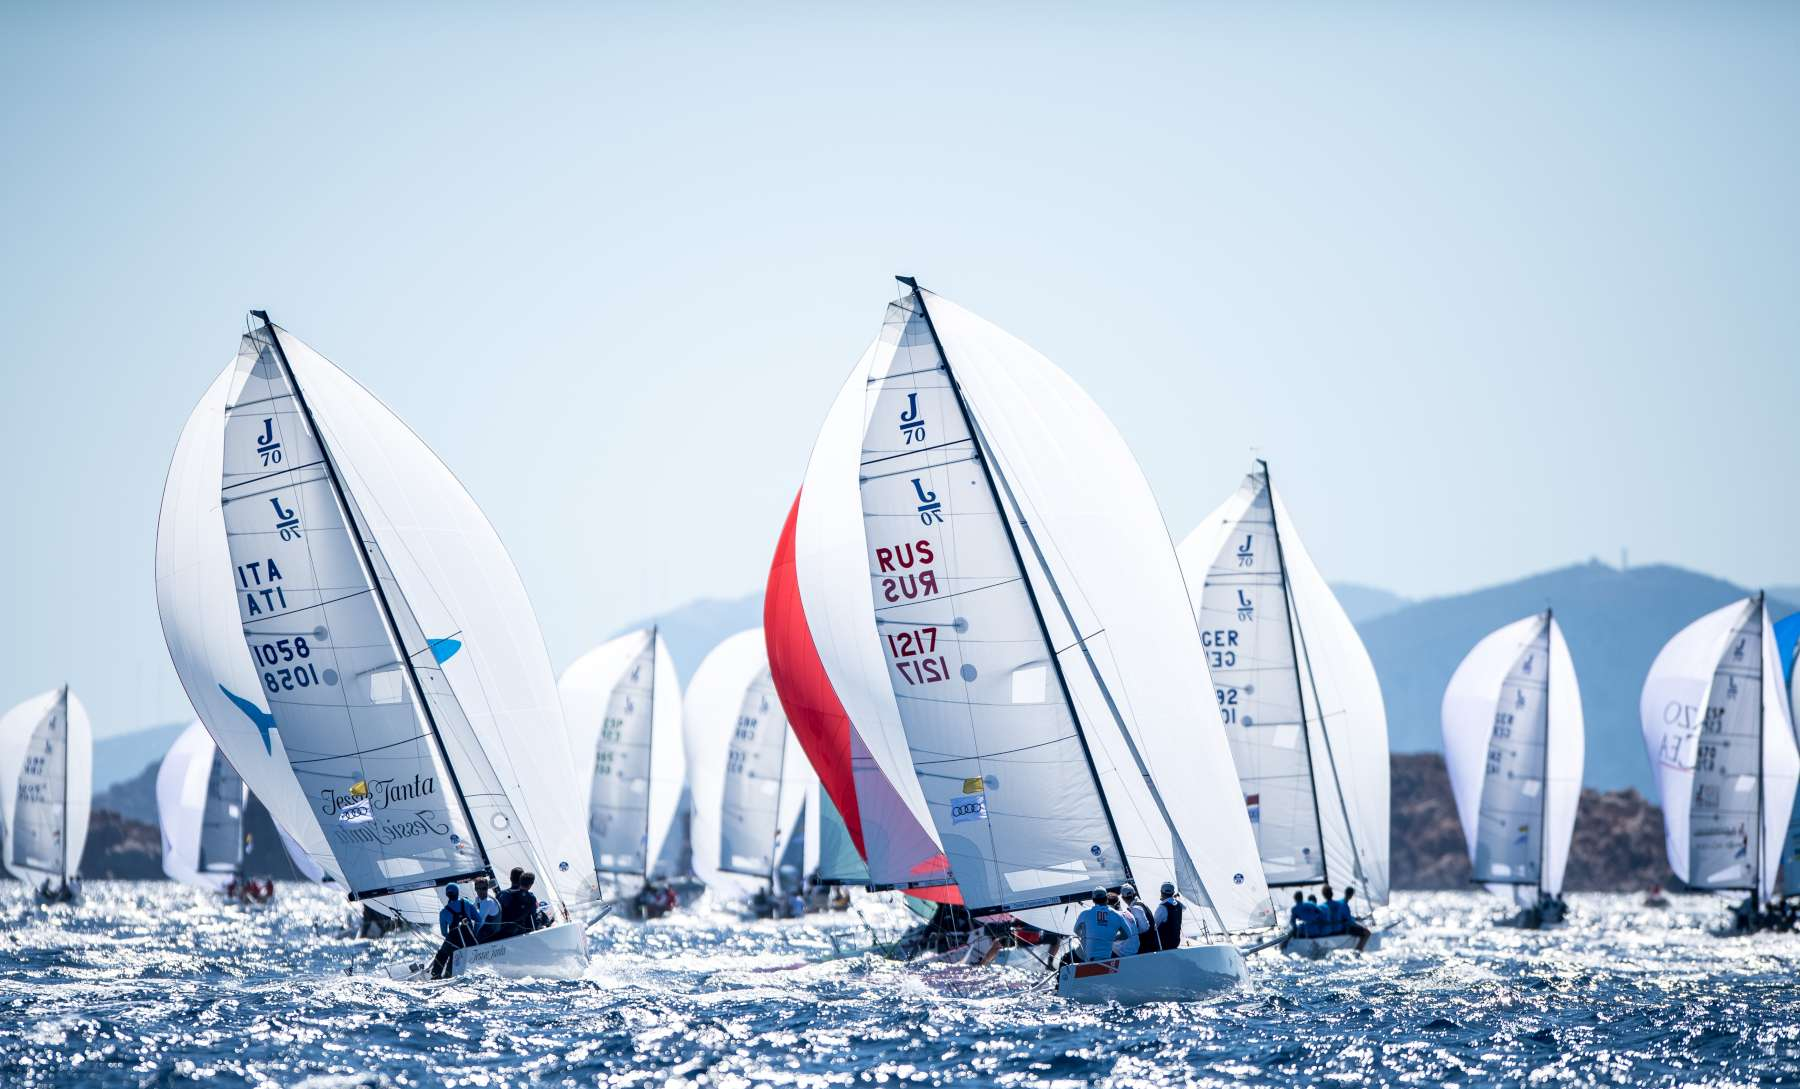 Audi J/70 World Championship - Video Day 3 online - NEWS - Yacht Club Costa Smeralda